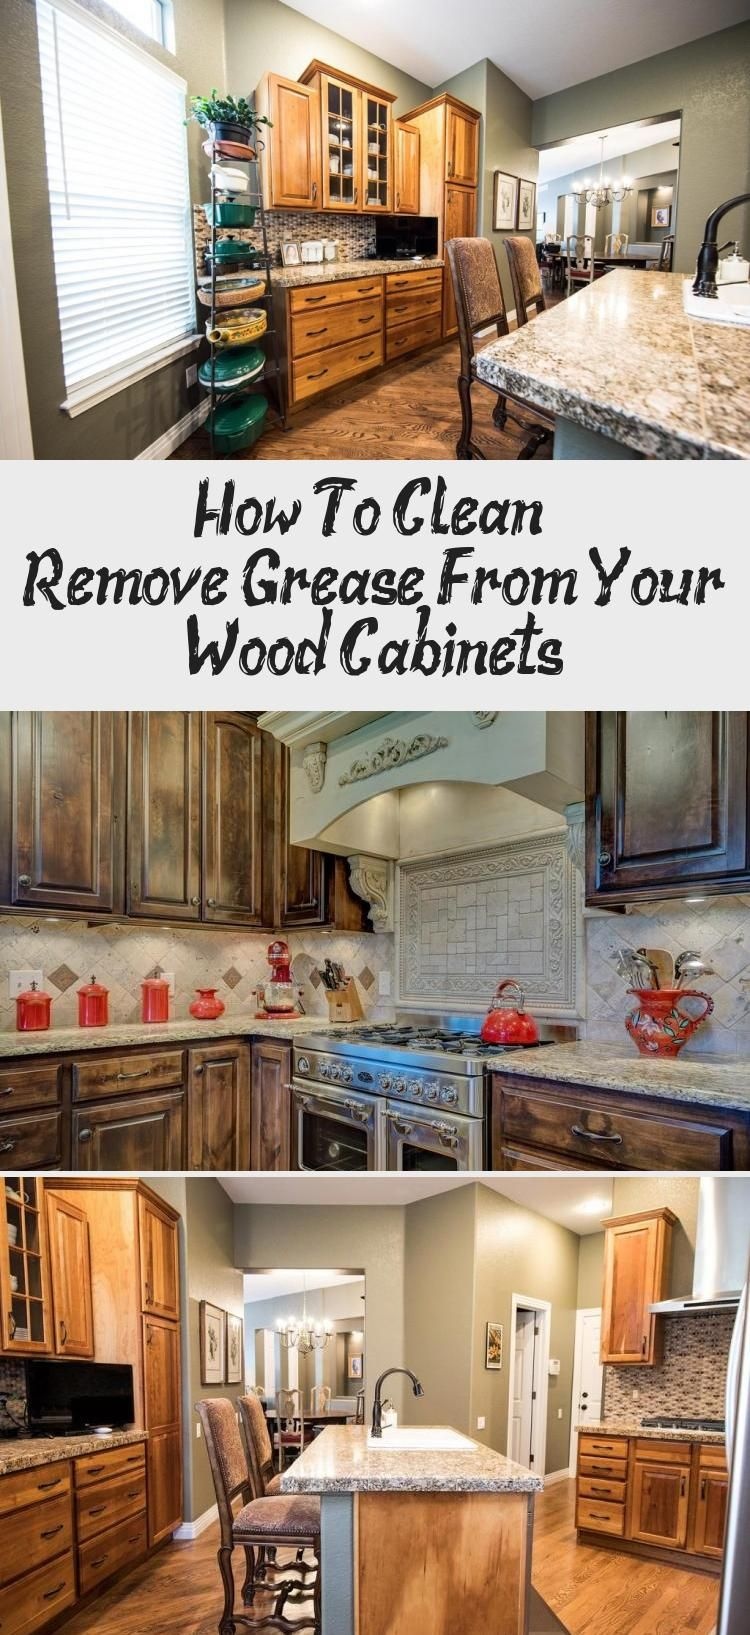 How to clean remove grease from your wood